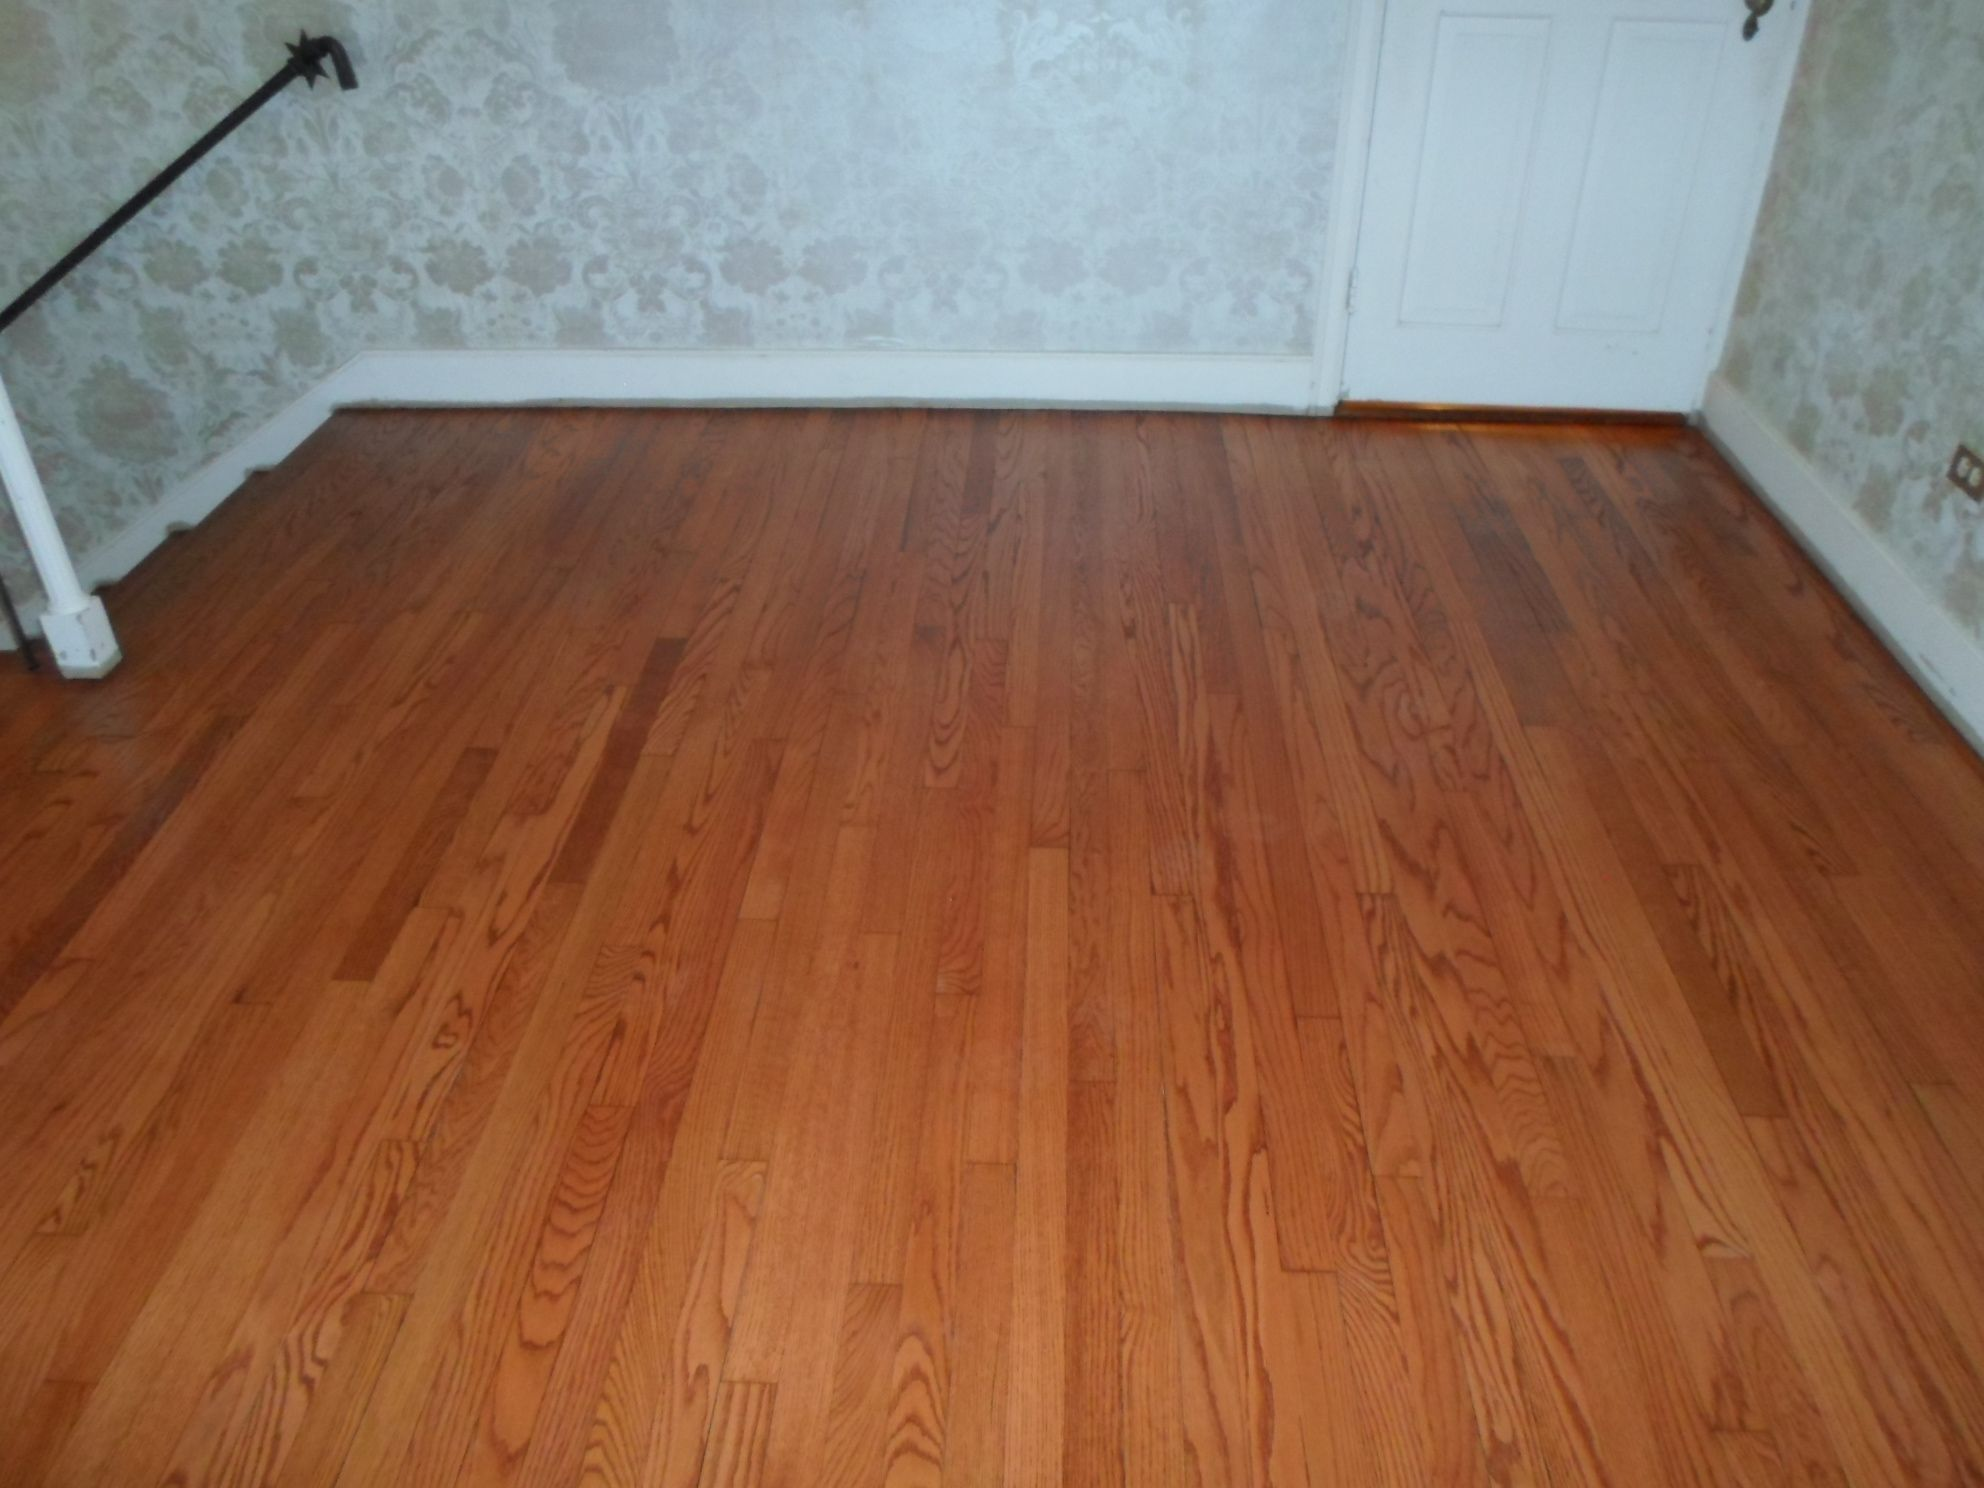 This Is Red Oak With A Gunstock Stain This Floor Was Done